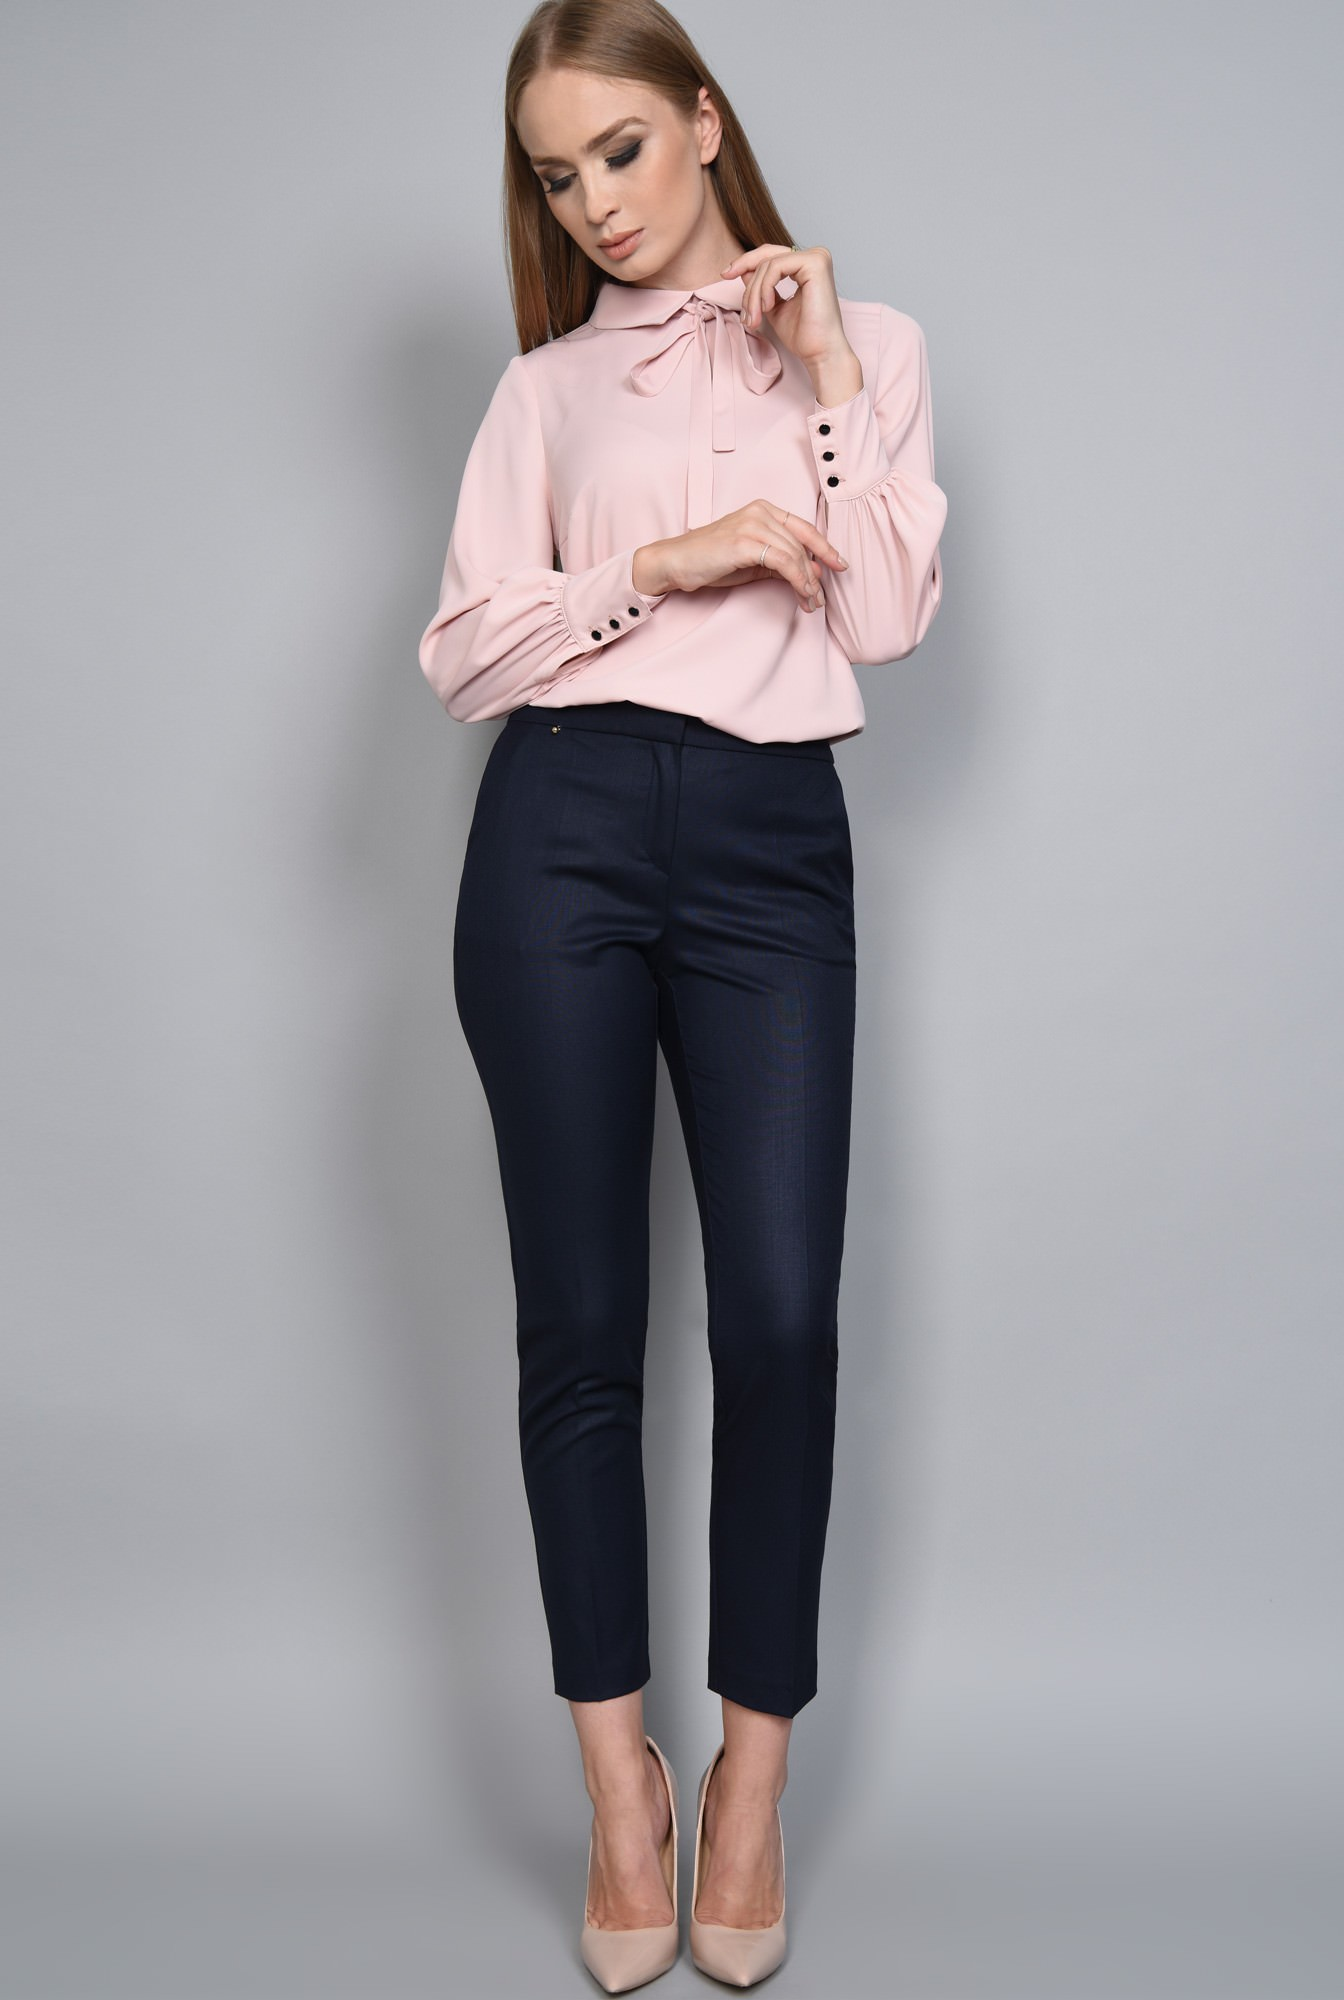 3 - BLUZA OFFICE BL 280-ROZ